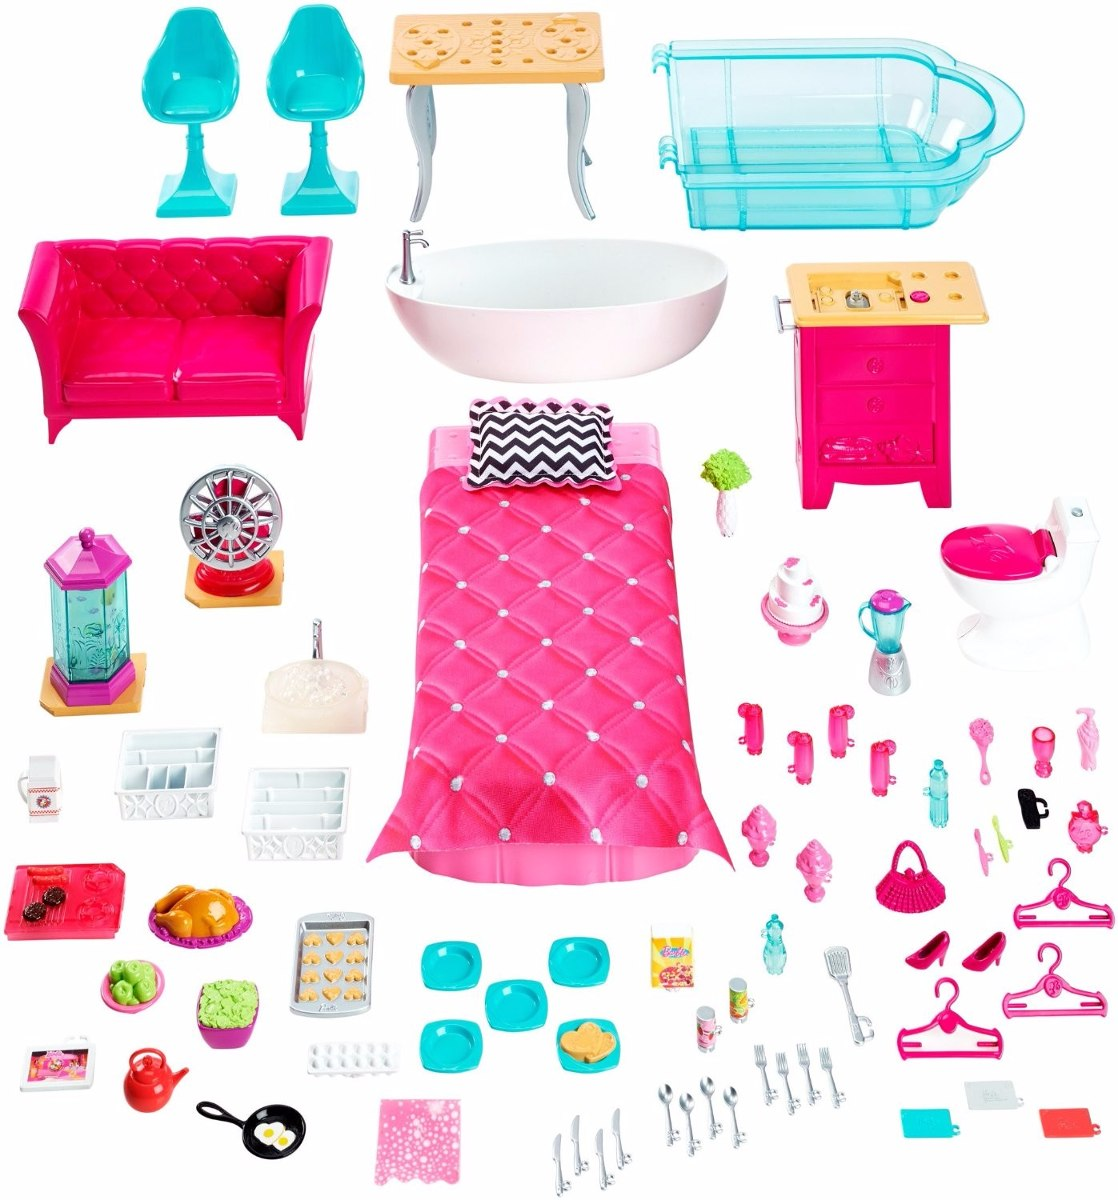 Casa da barbie 3 andares house dreamhouse frete gratis r for Casa accessori